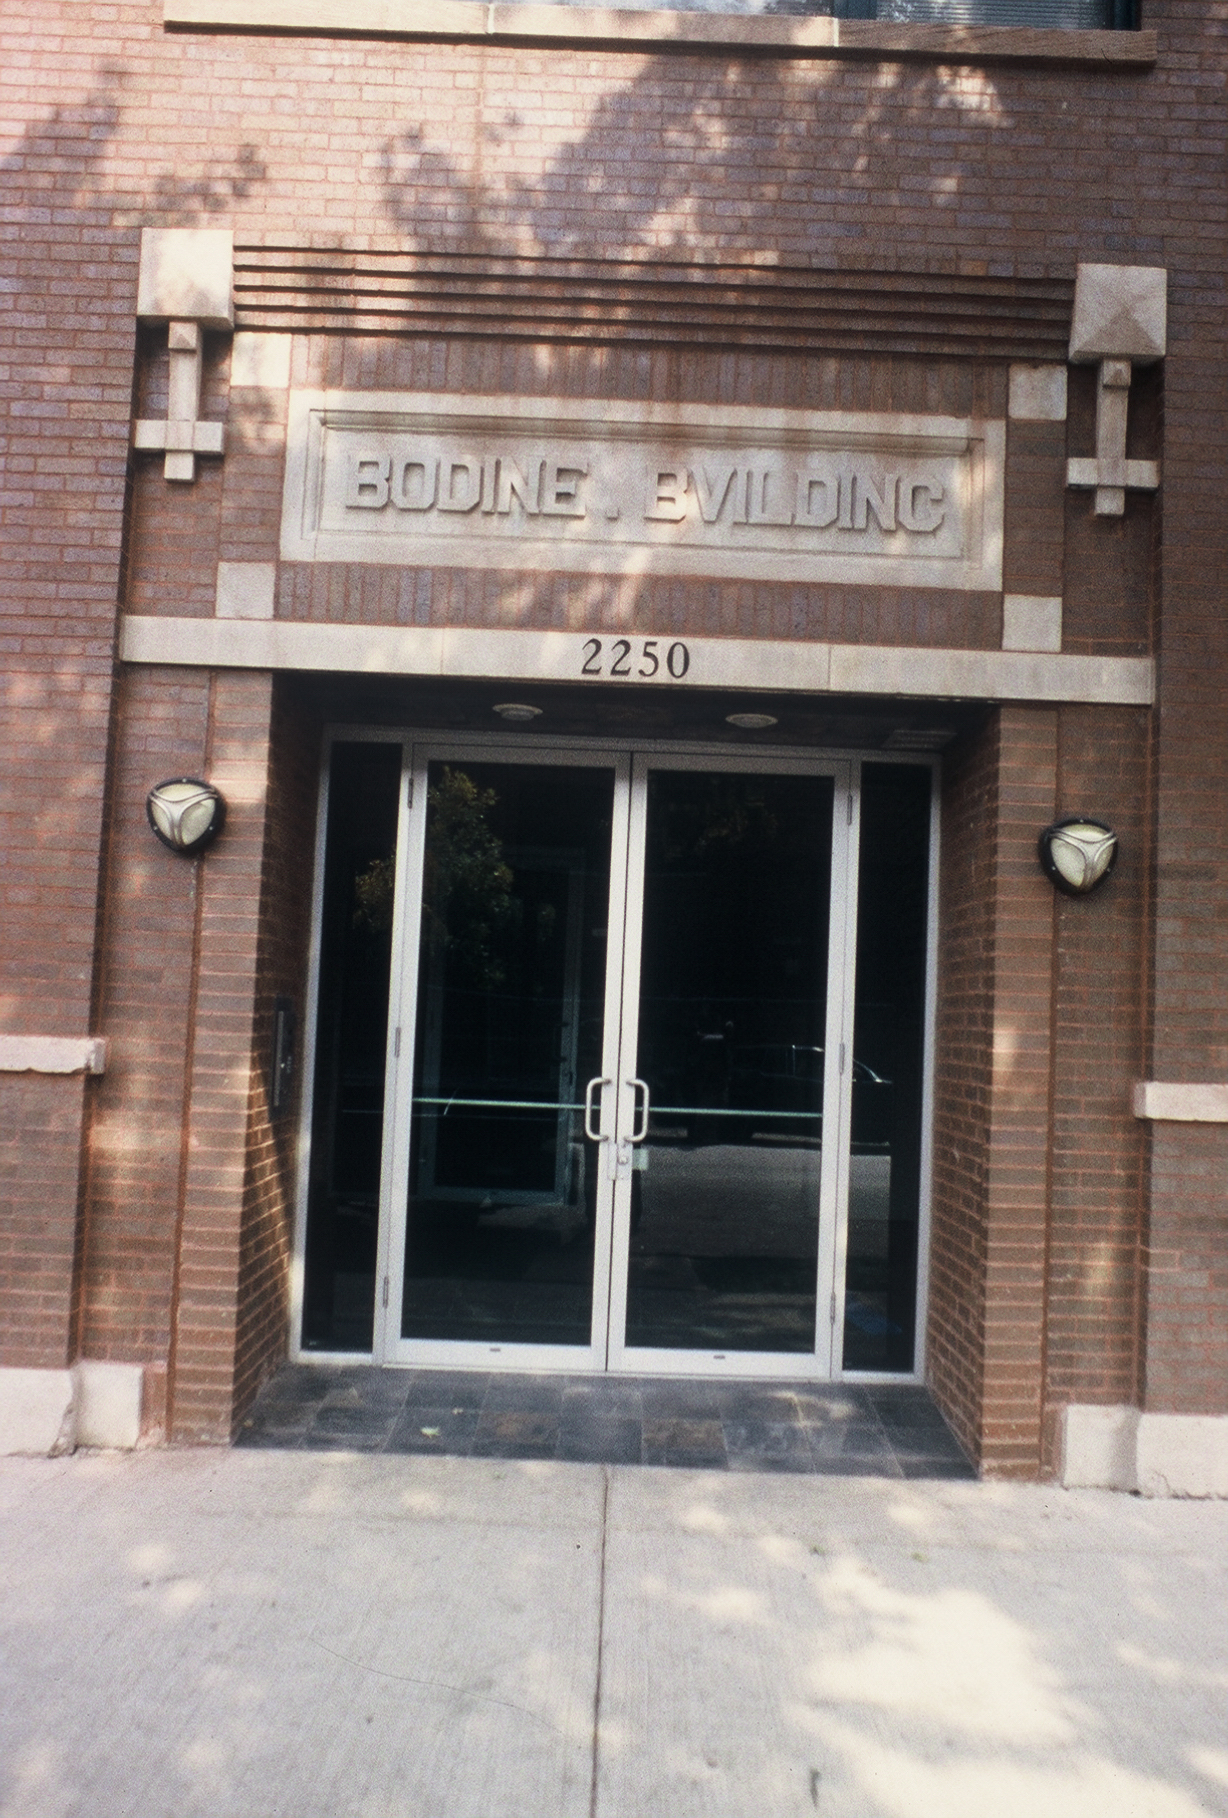 The Bodine Electric Company building at 2250 East Ohio was built in 1943, has been recoinfigured into 20 residential units.